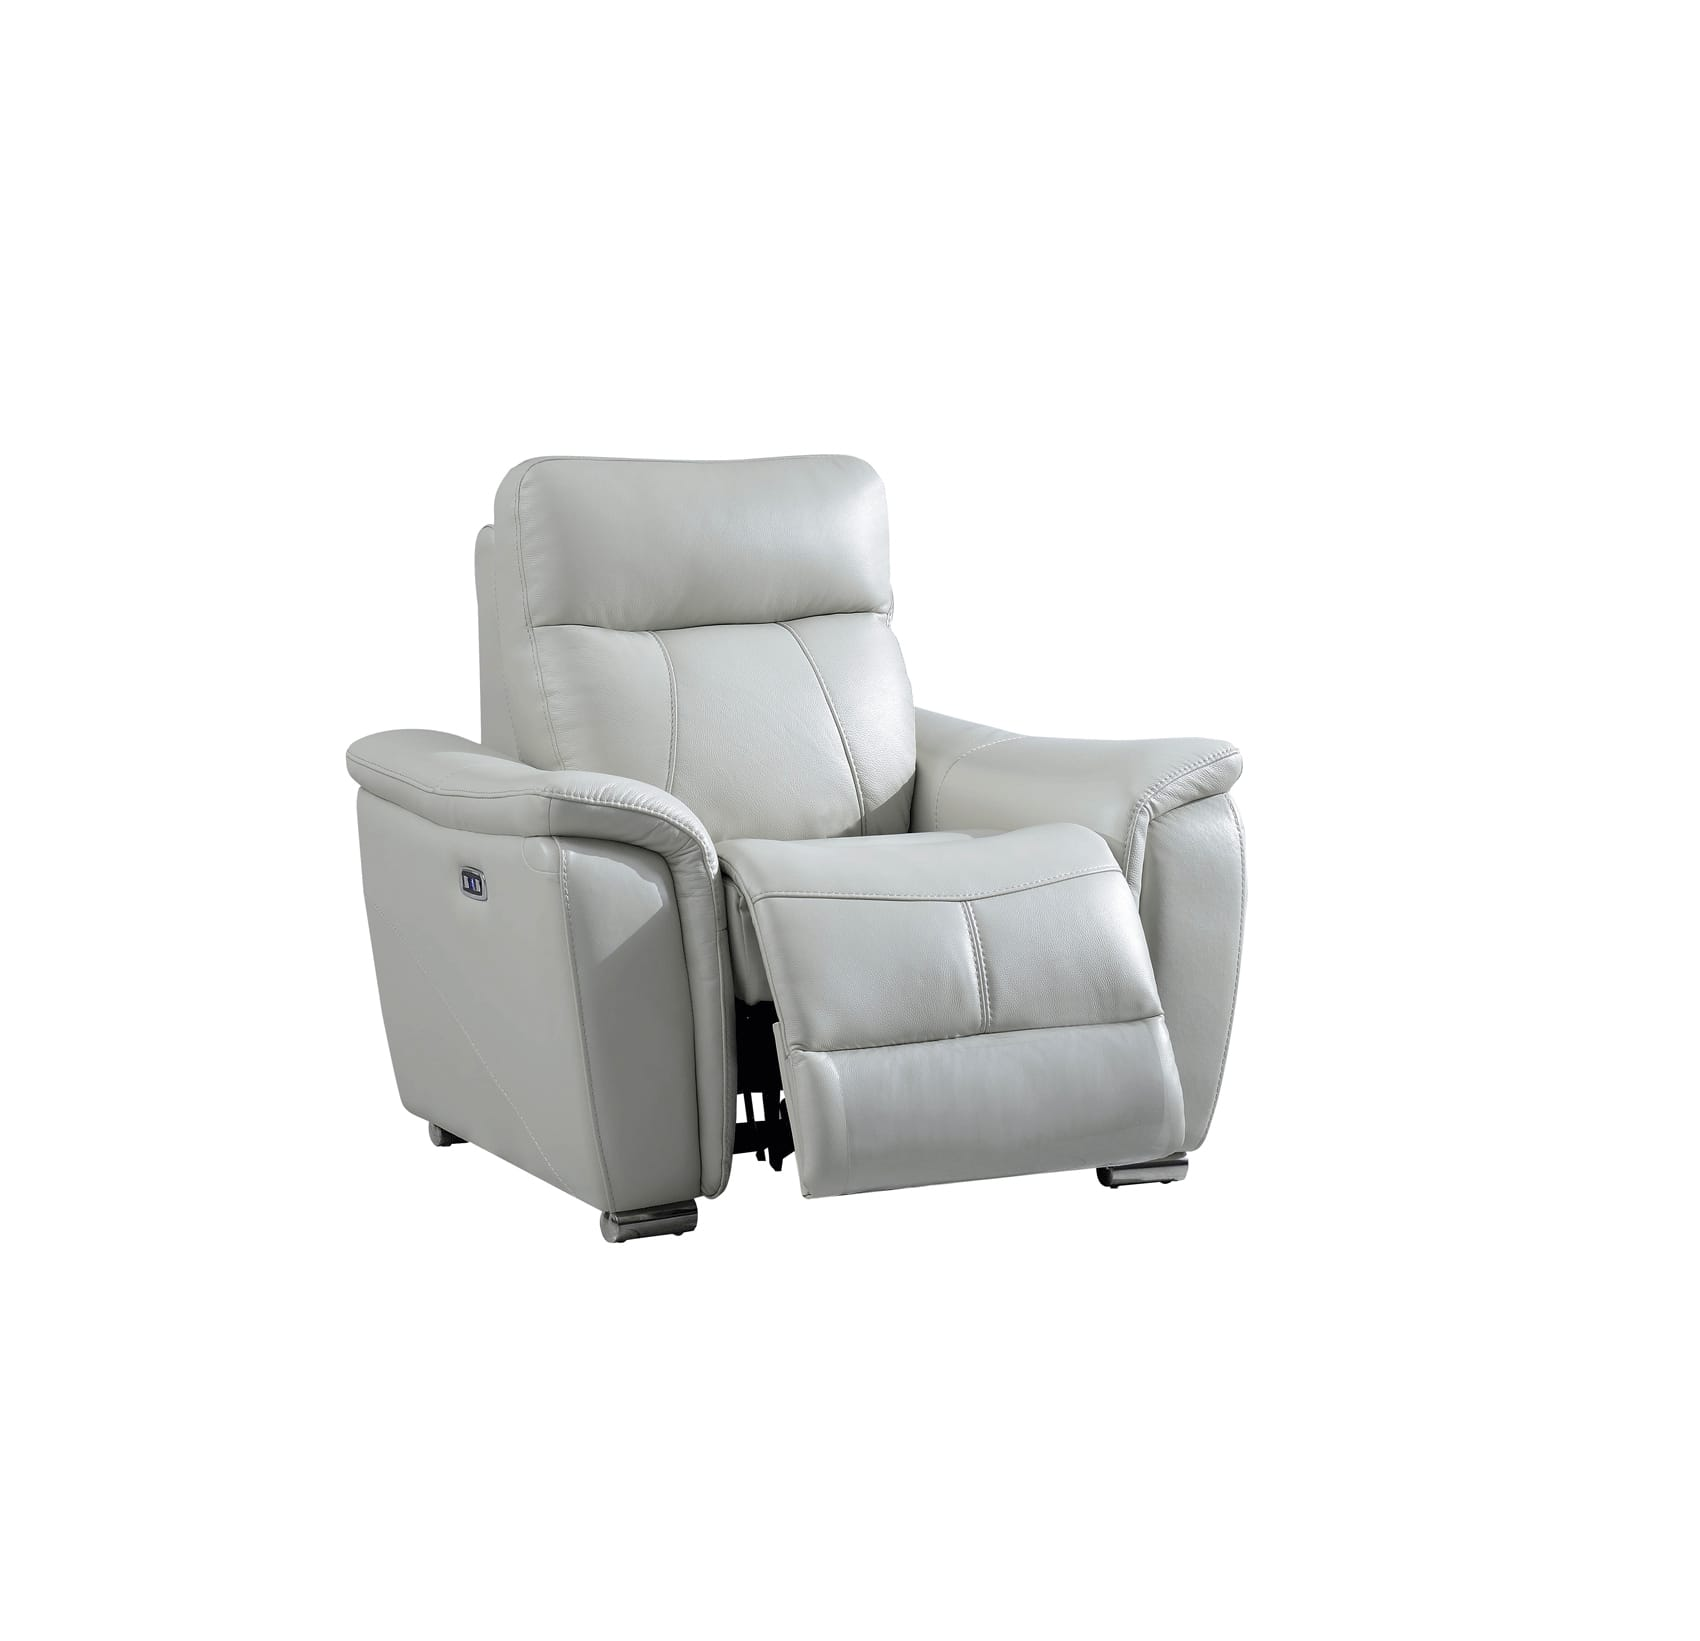 Electric Recliner Leather Chairs 1705 Gray Leather Chair W Electric Recliner By Esf